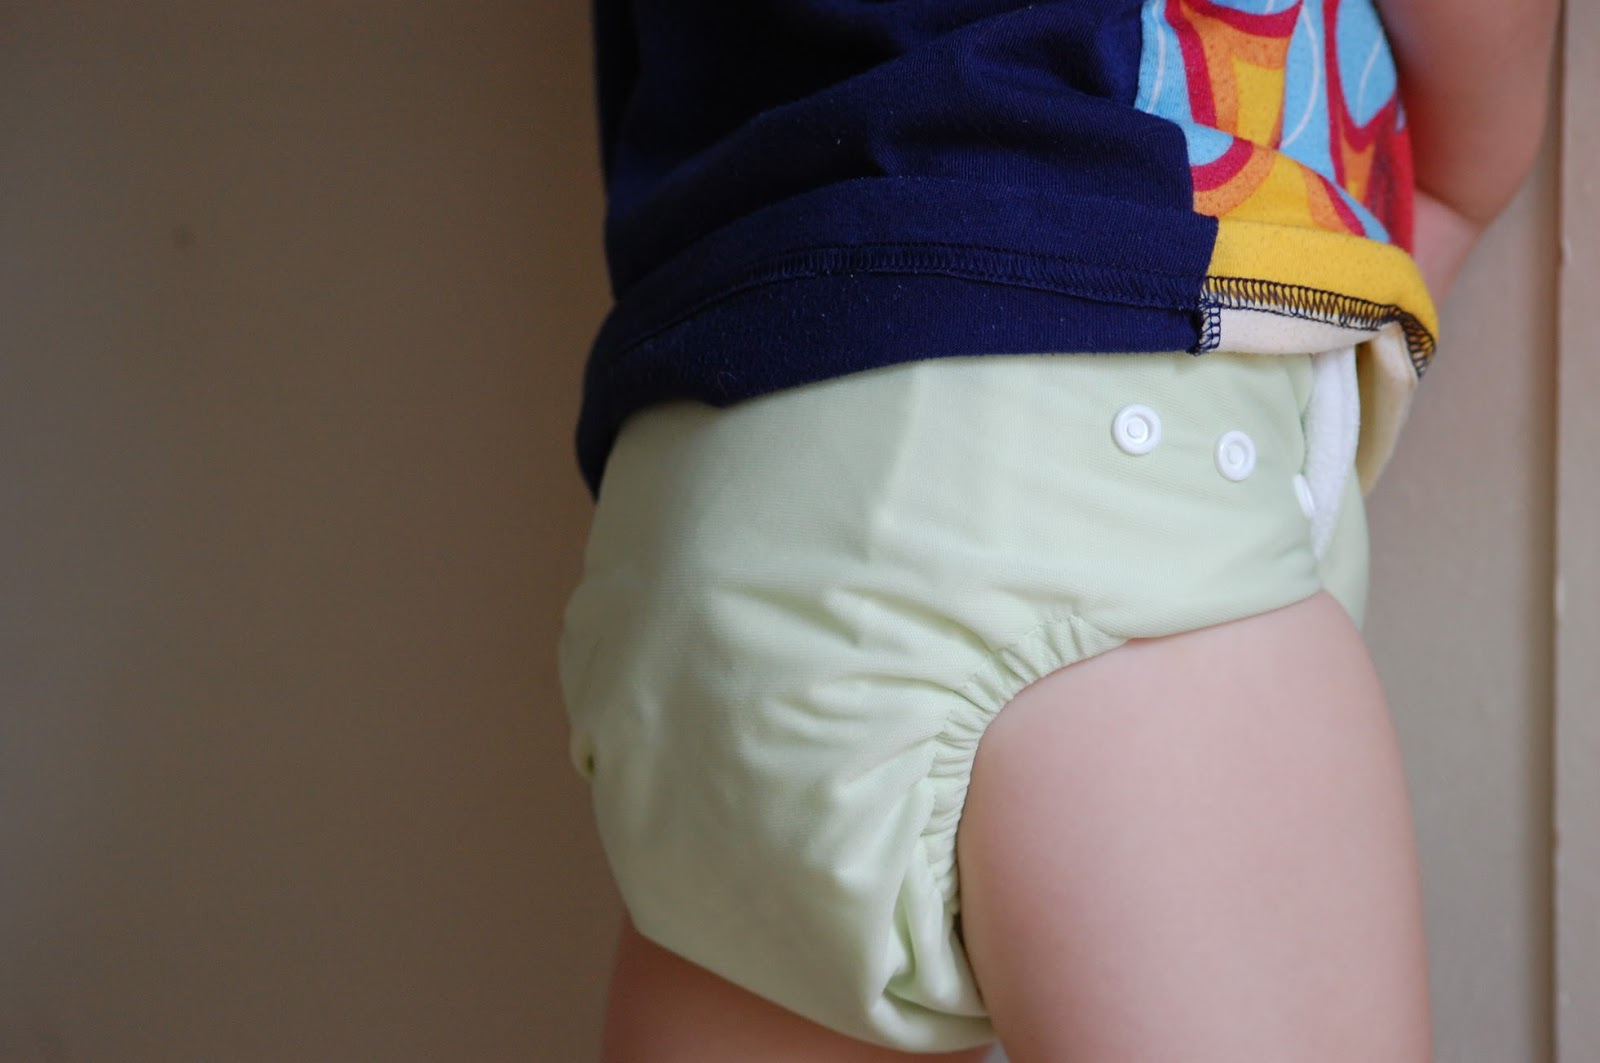 Adult diaper retarded severely wear